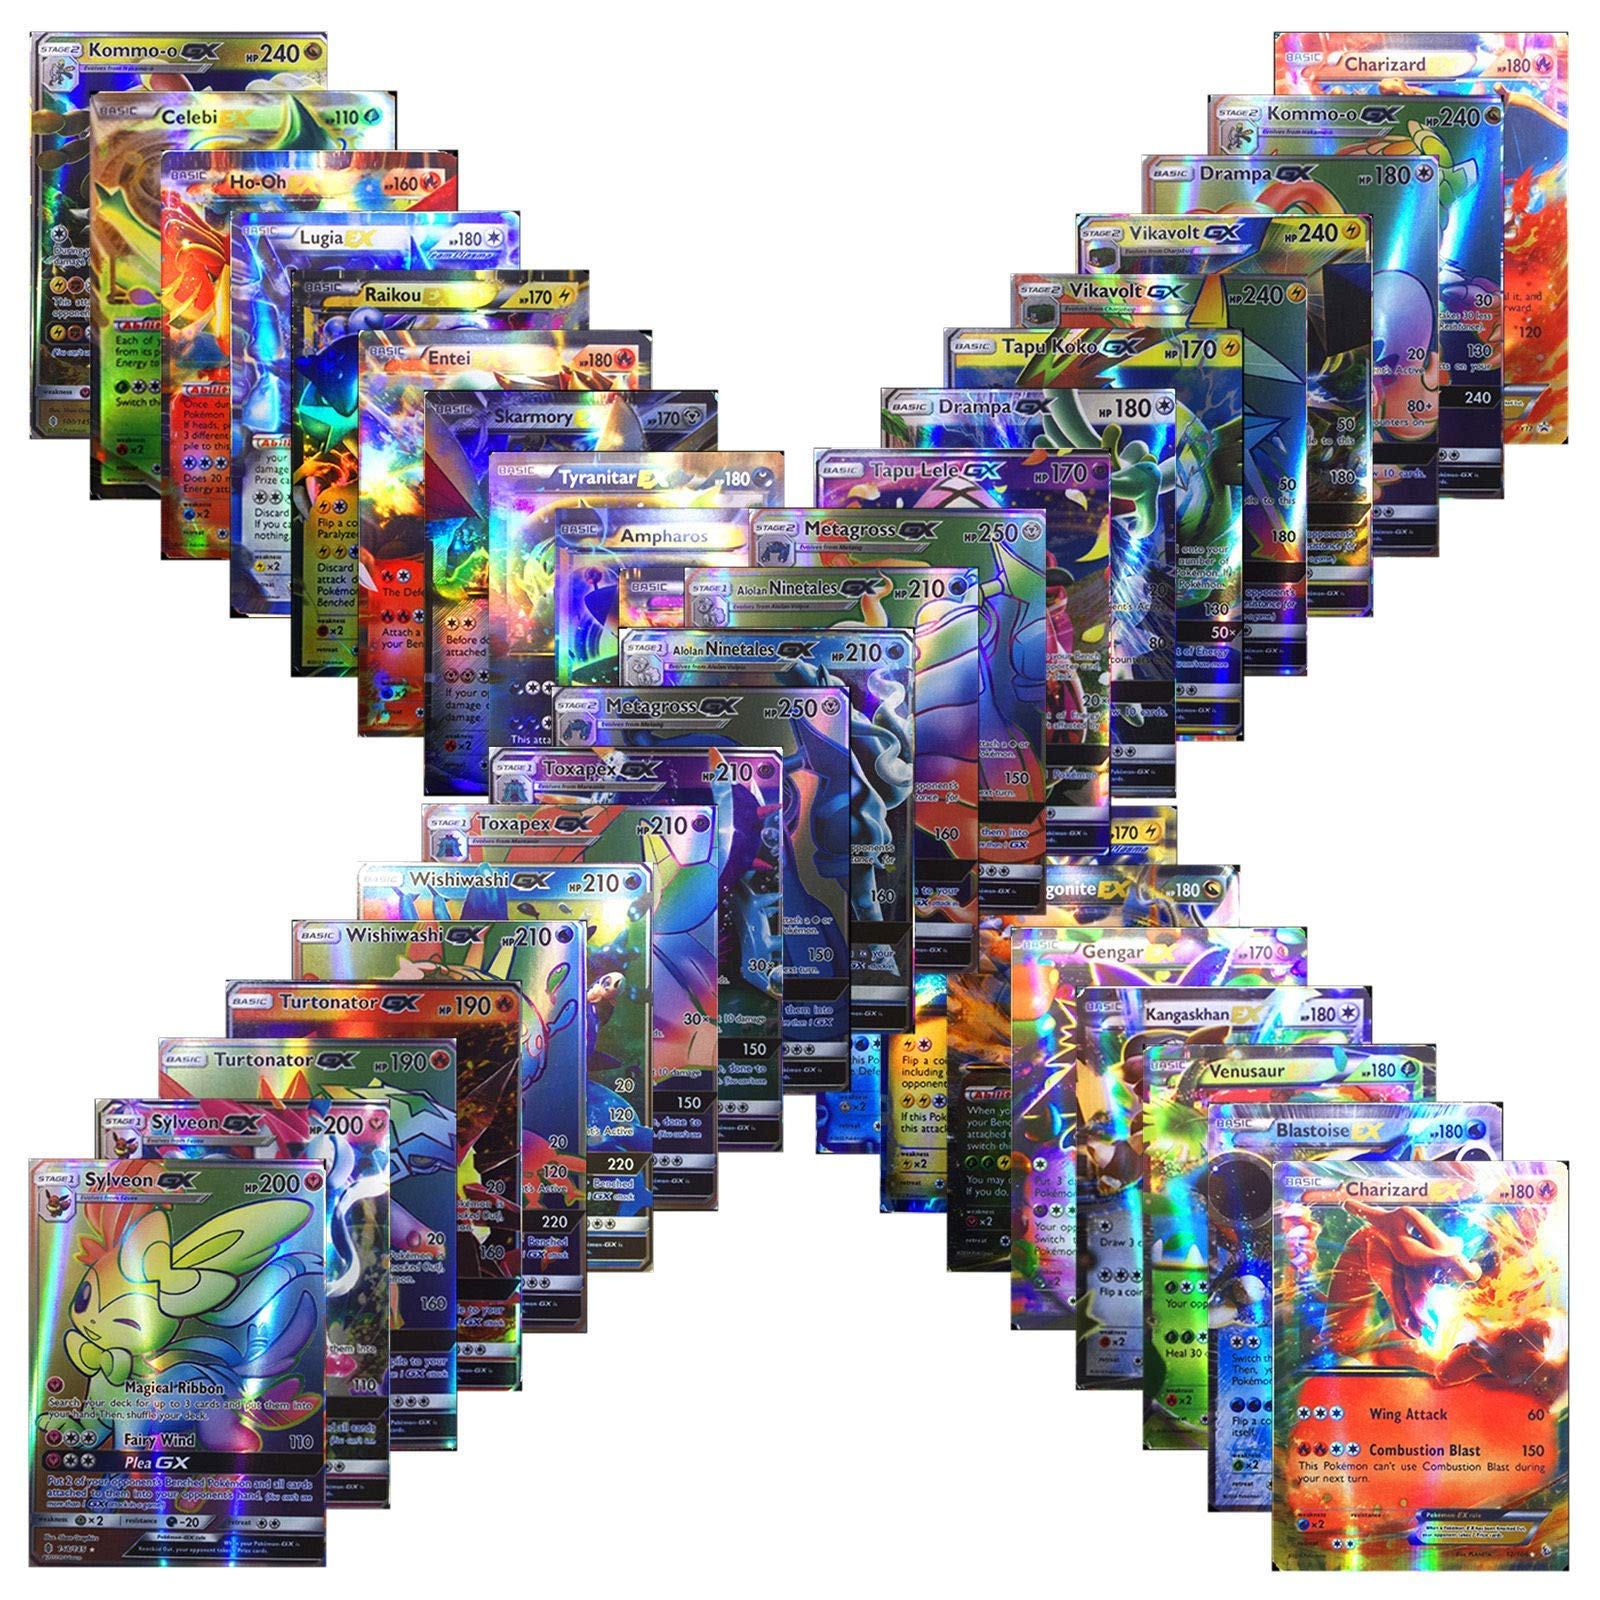 100 Cards TCG Style Card Holo EX Full Art! 60 EX Cards, 20 Mega EX Cards, 20 GX Cards 1 Energy Card